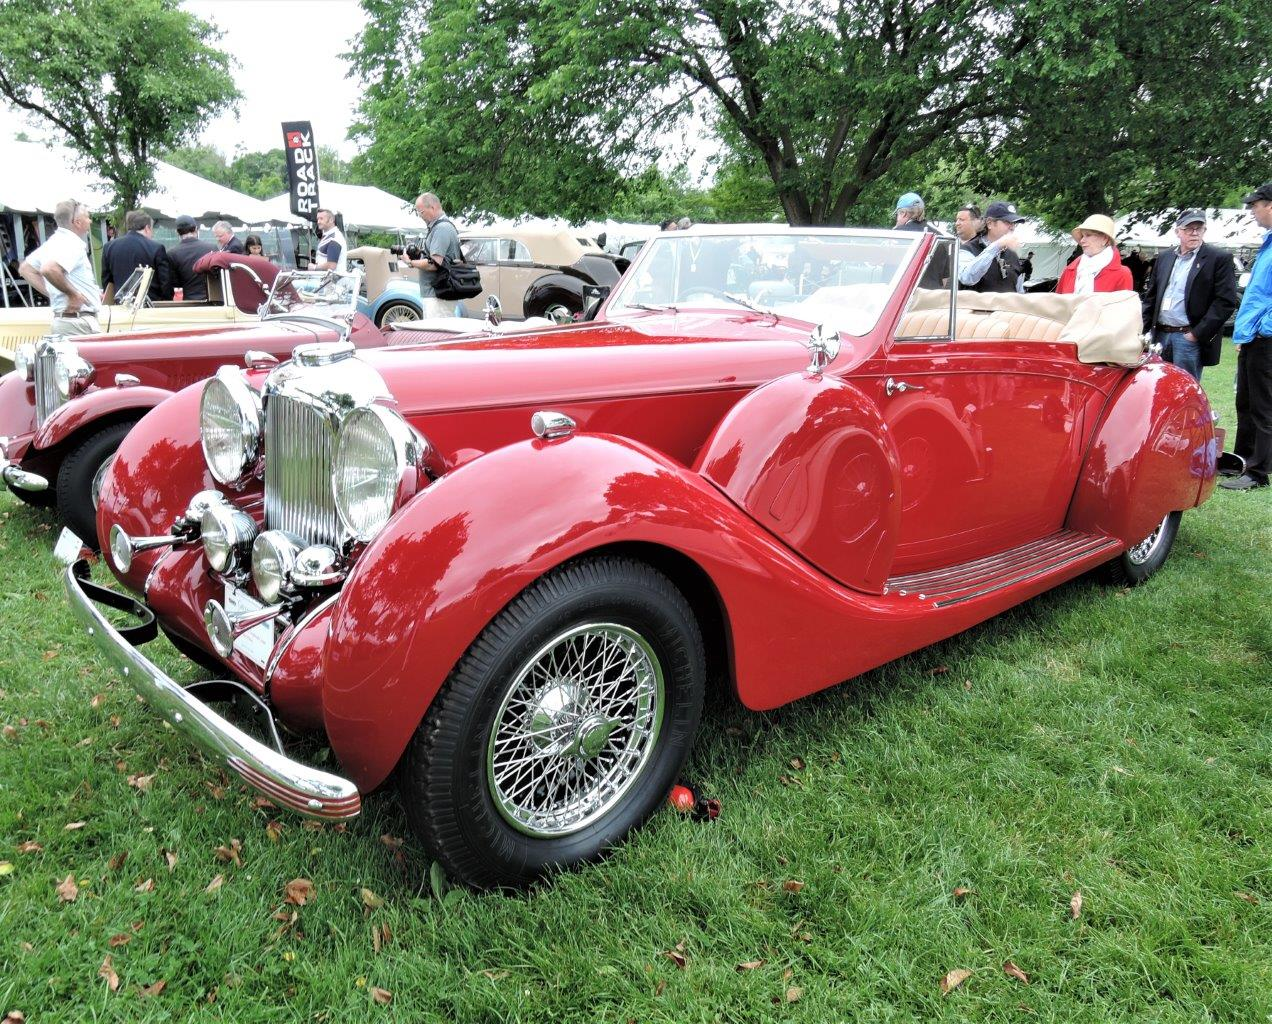 red 1939 Lagonda V-12 Drophead Coupe - 2018 Greenwich Concours International